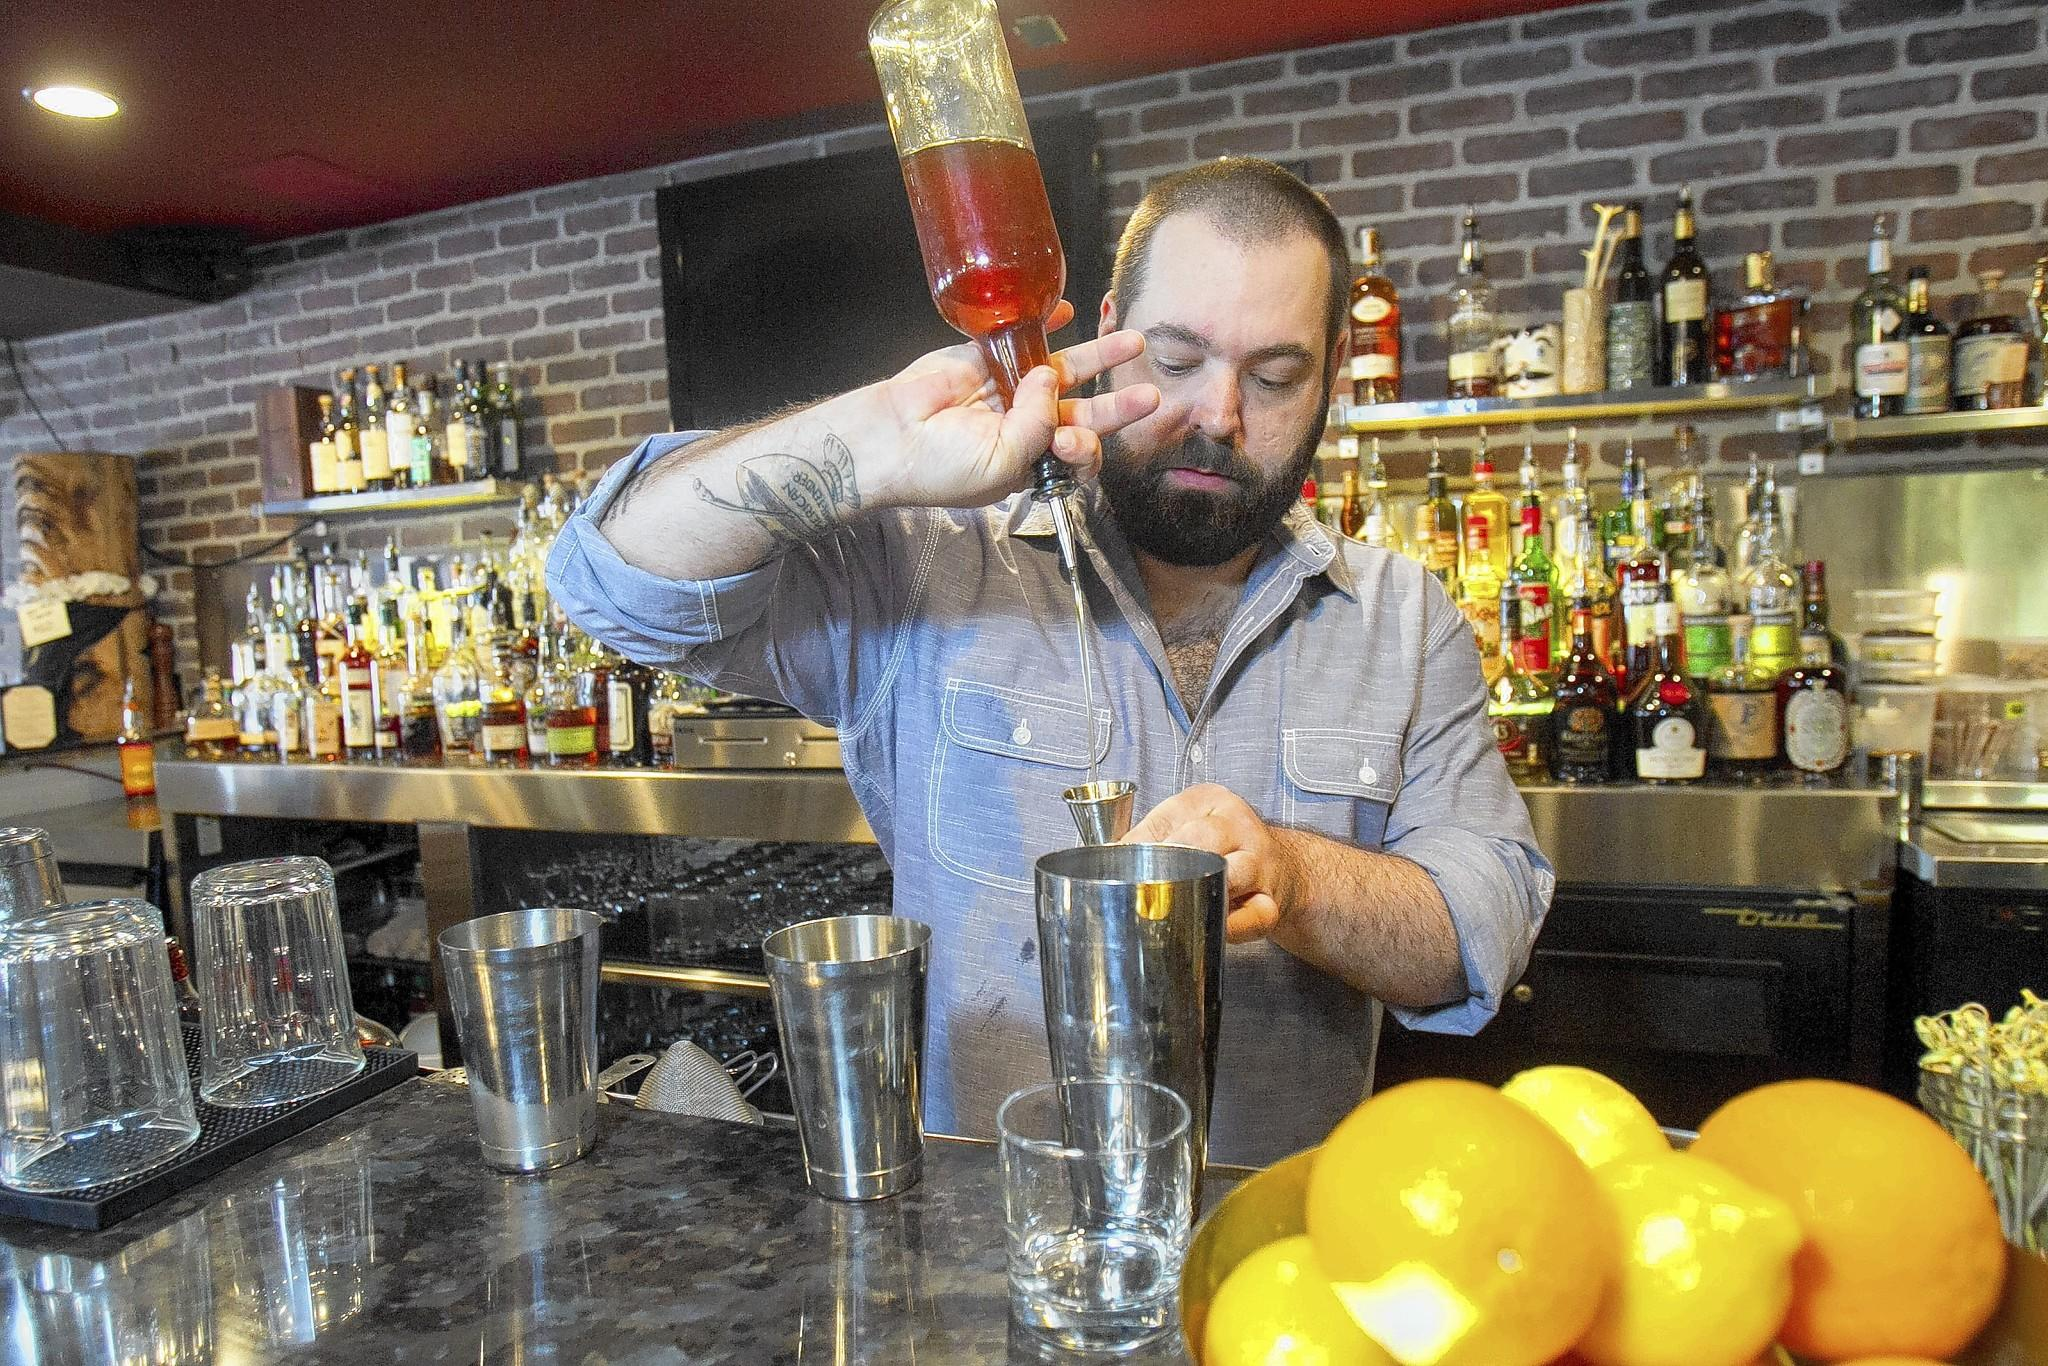 Jason Schiffer, co-owner of 320 Main in Seal Beach, makes a drink called the Detroiter on Tuesday. The restaurant is preparing for the OC Cocktail Week from March 2 to 8.